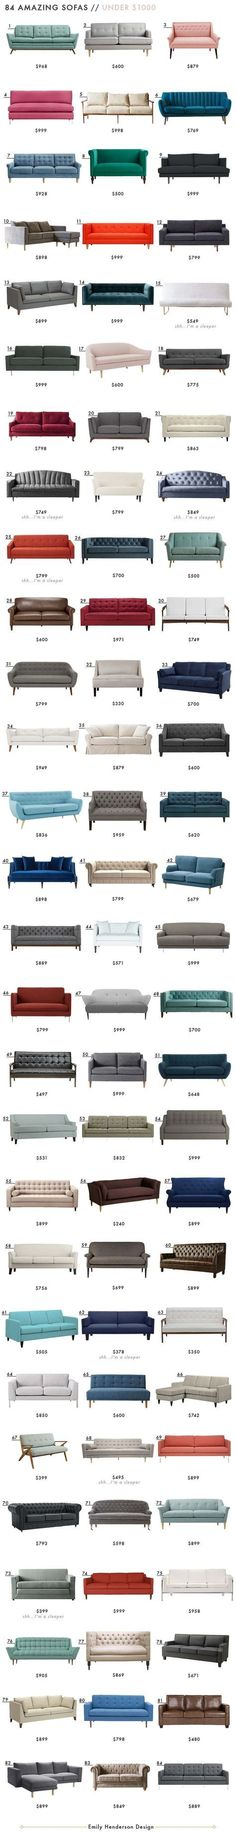 Decor - 84 Affordable Couches Under $1000